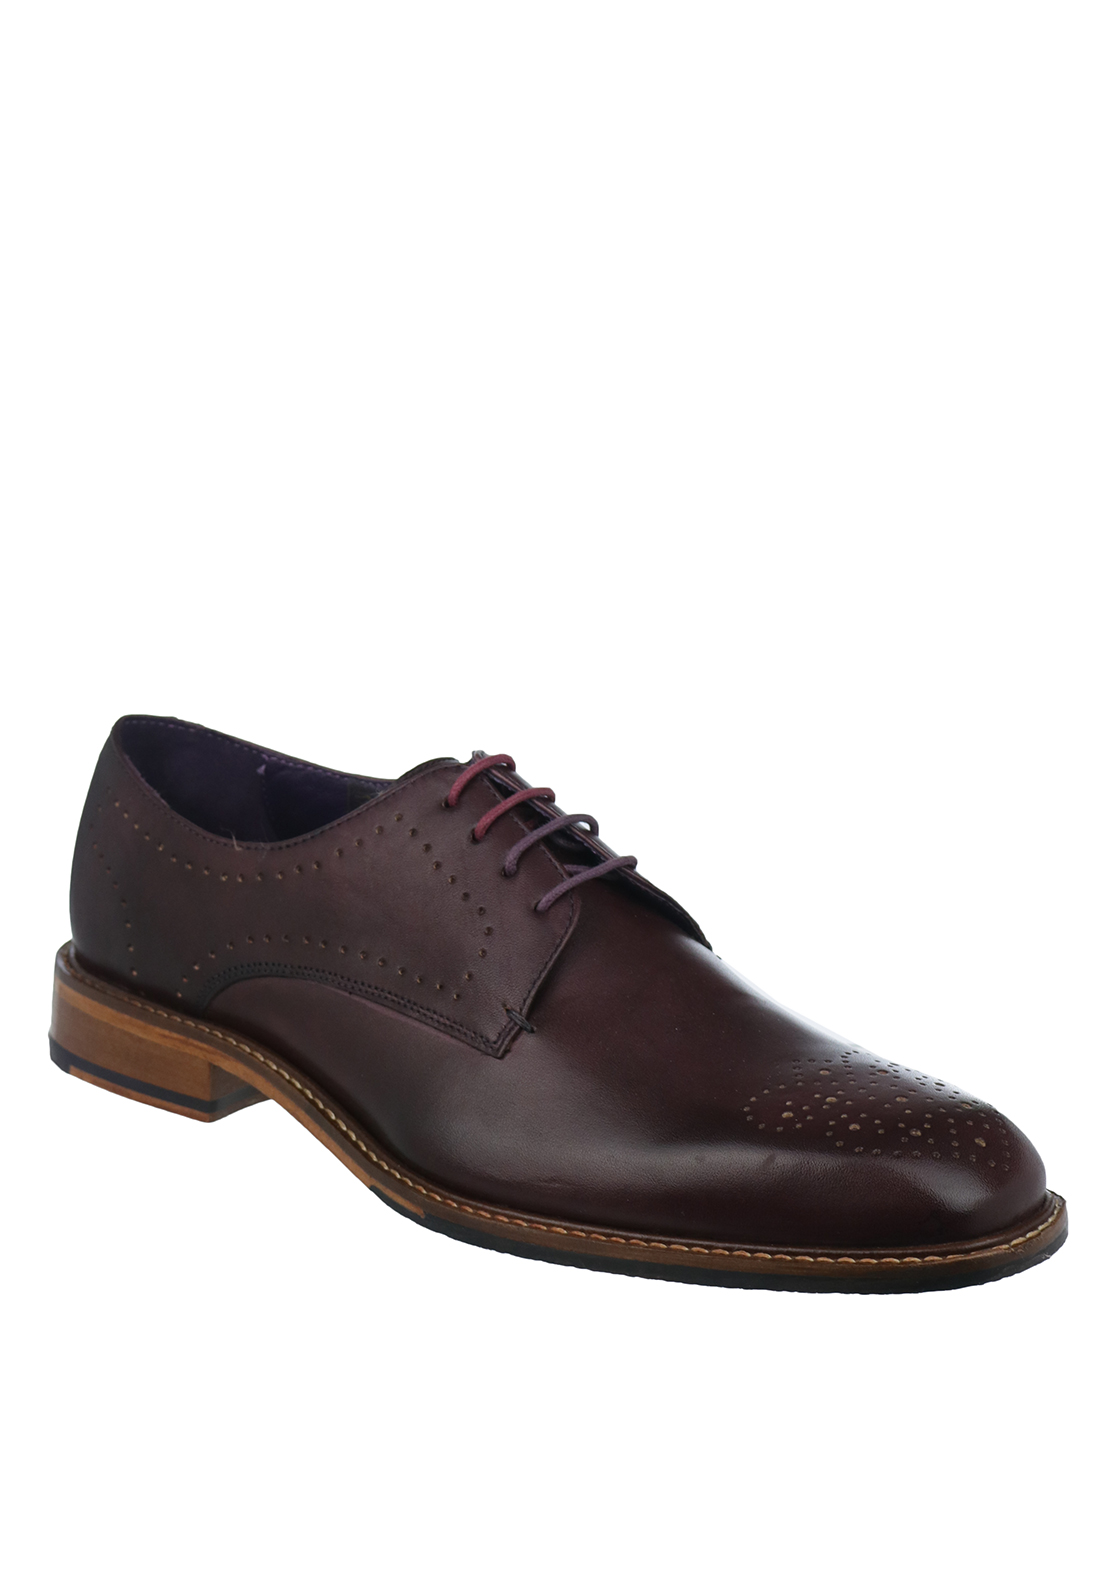 Ted Baker Mens Marar Leather Shoe, Wine